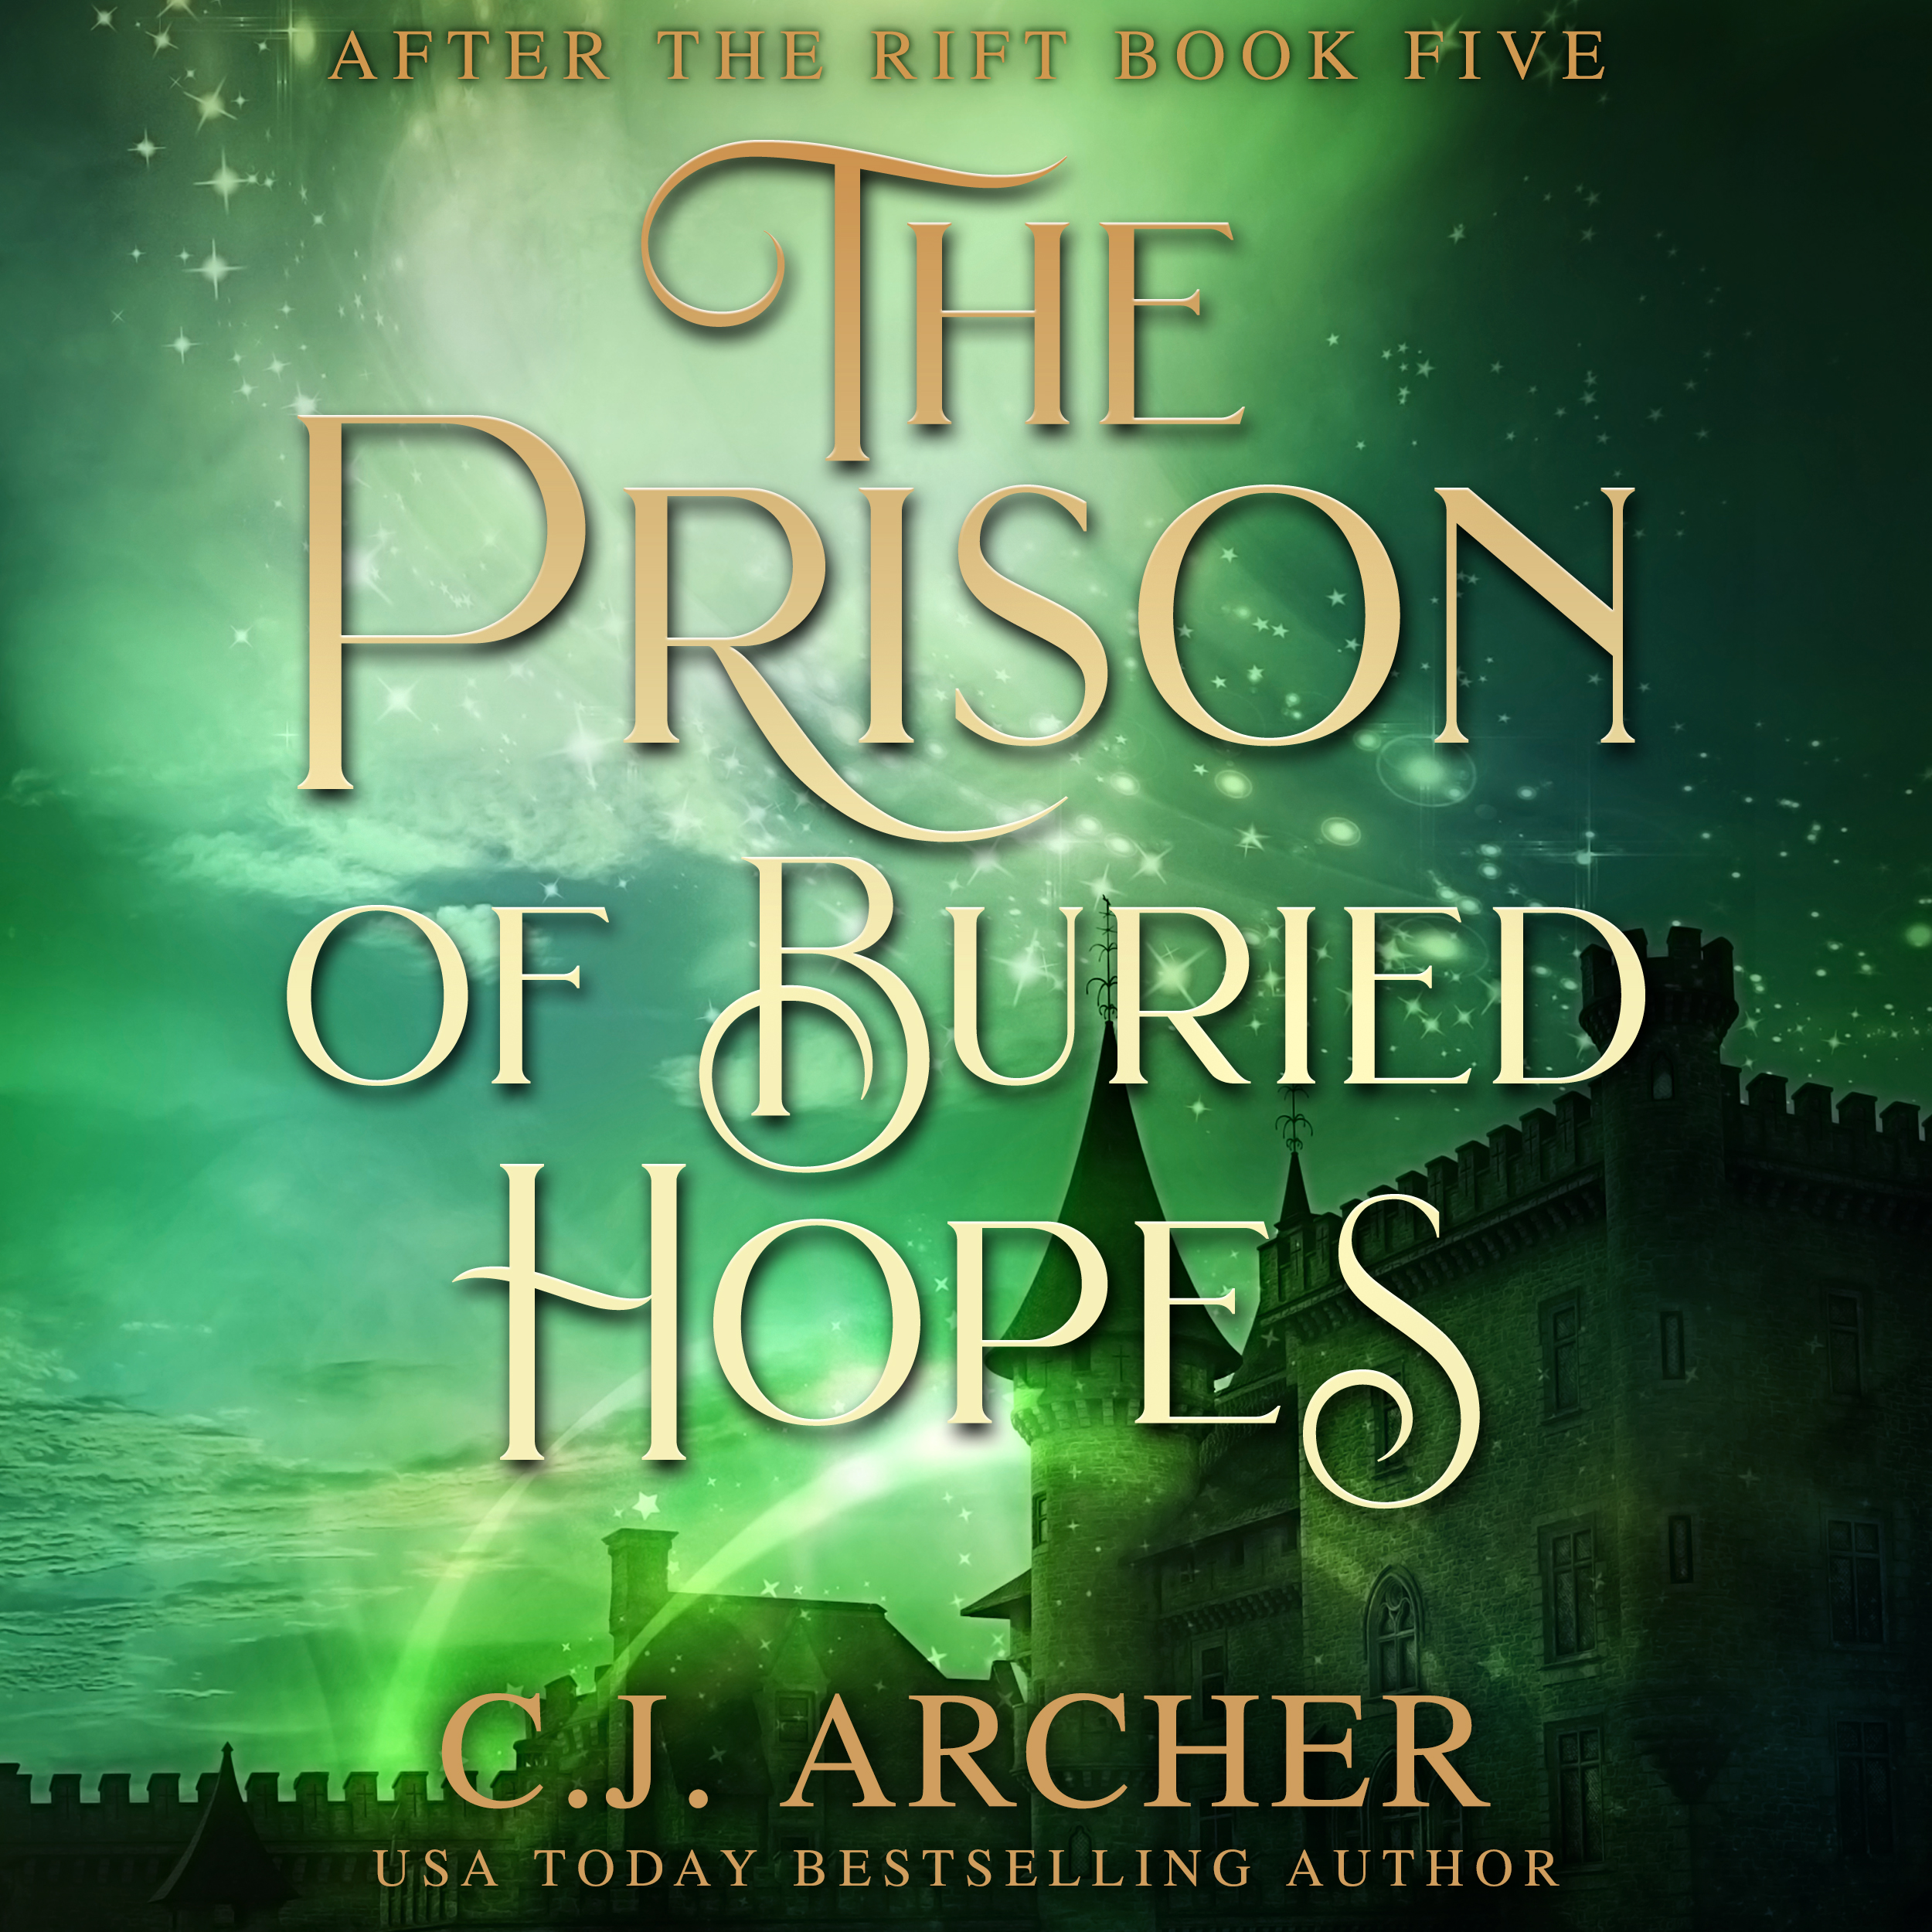 The Prison of Buried Hopes audiobook by CJ Archer